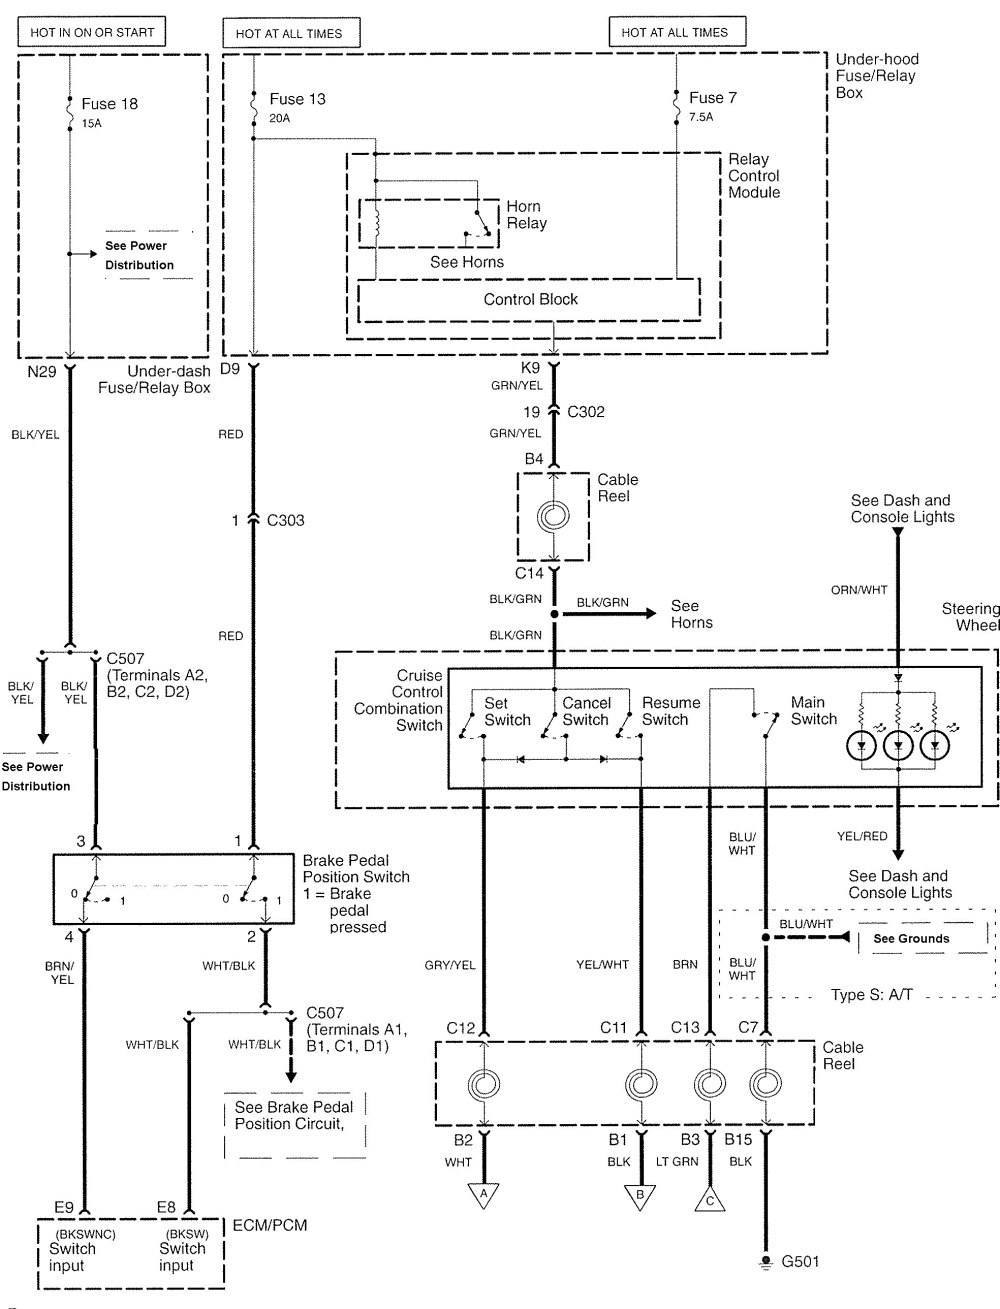 medium resolution of 2005 acura tsx fuse box diagram pdf 2006 acura tsx fuse box diagram wiring diagram elsalvadorla